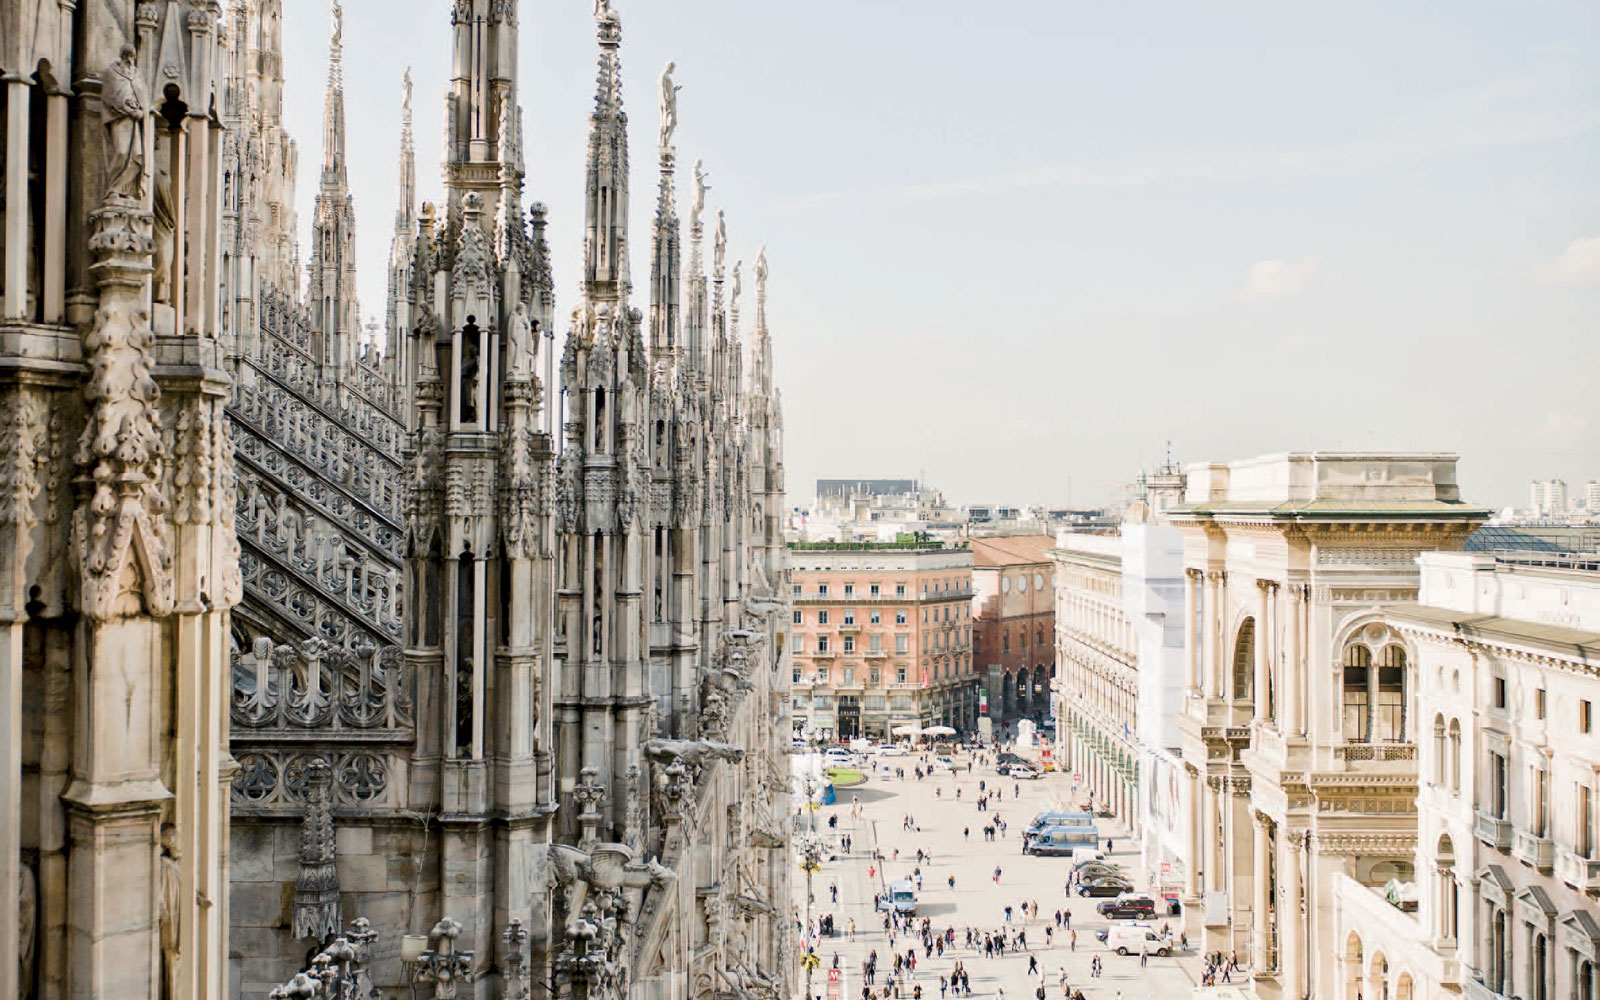 best galleries and museums in milan Top 5 Best Galleries and Museums in Milan Top 5 Best Galleries and Museums in Milan 5